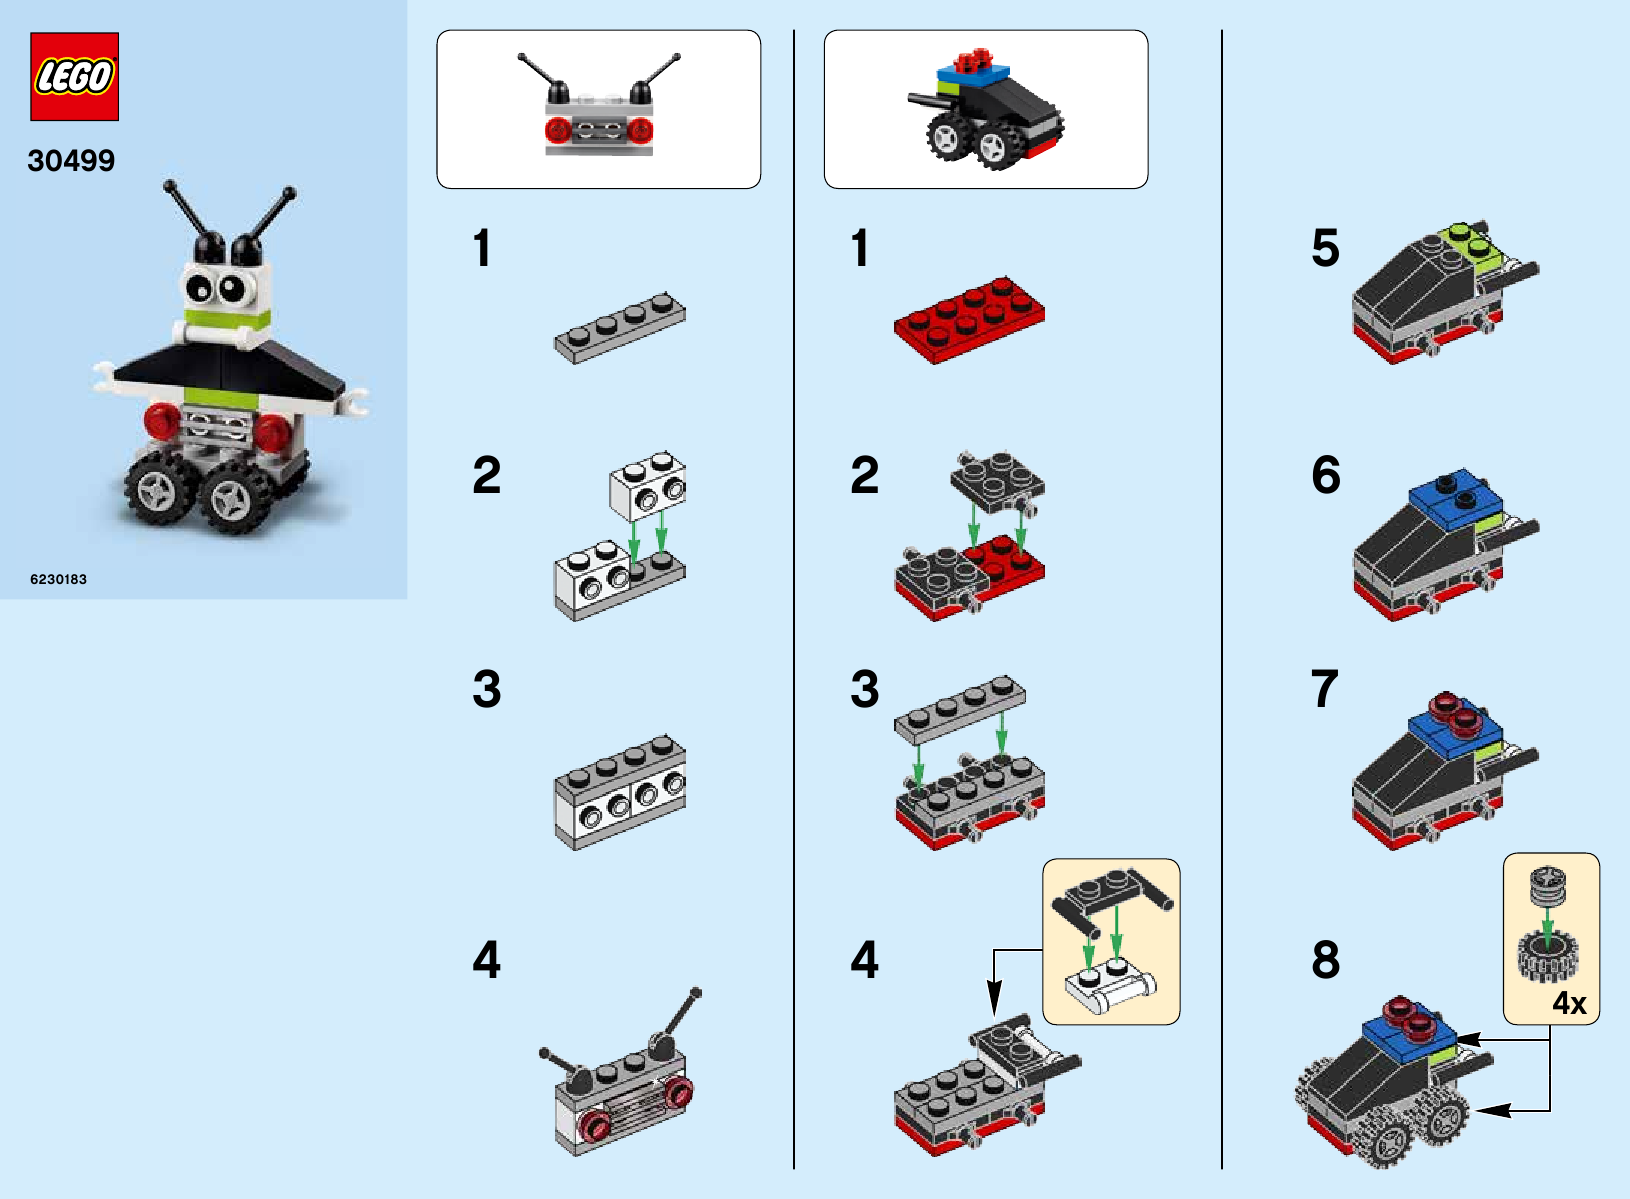 Robot/Vehicle Free Builds - Make It Your